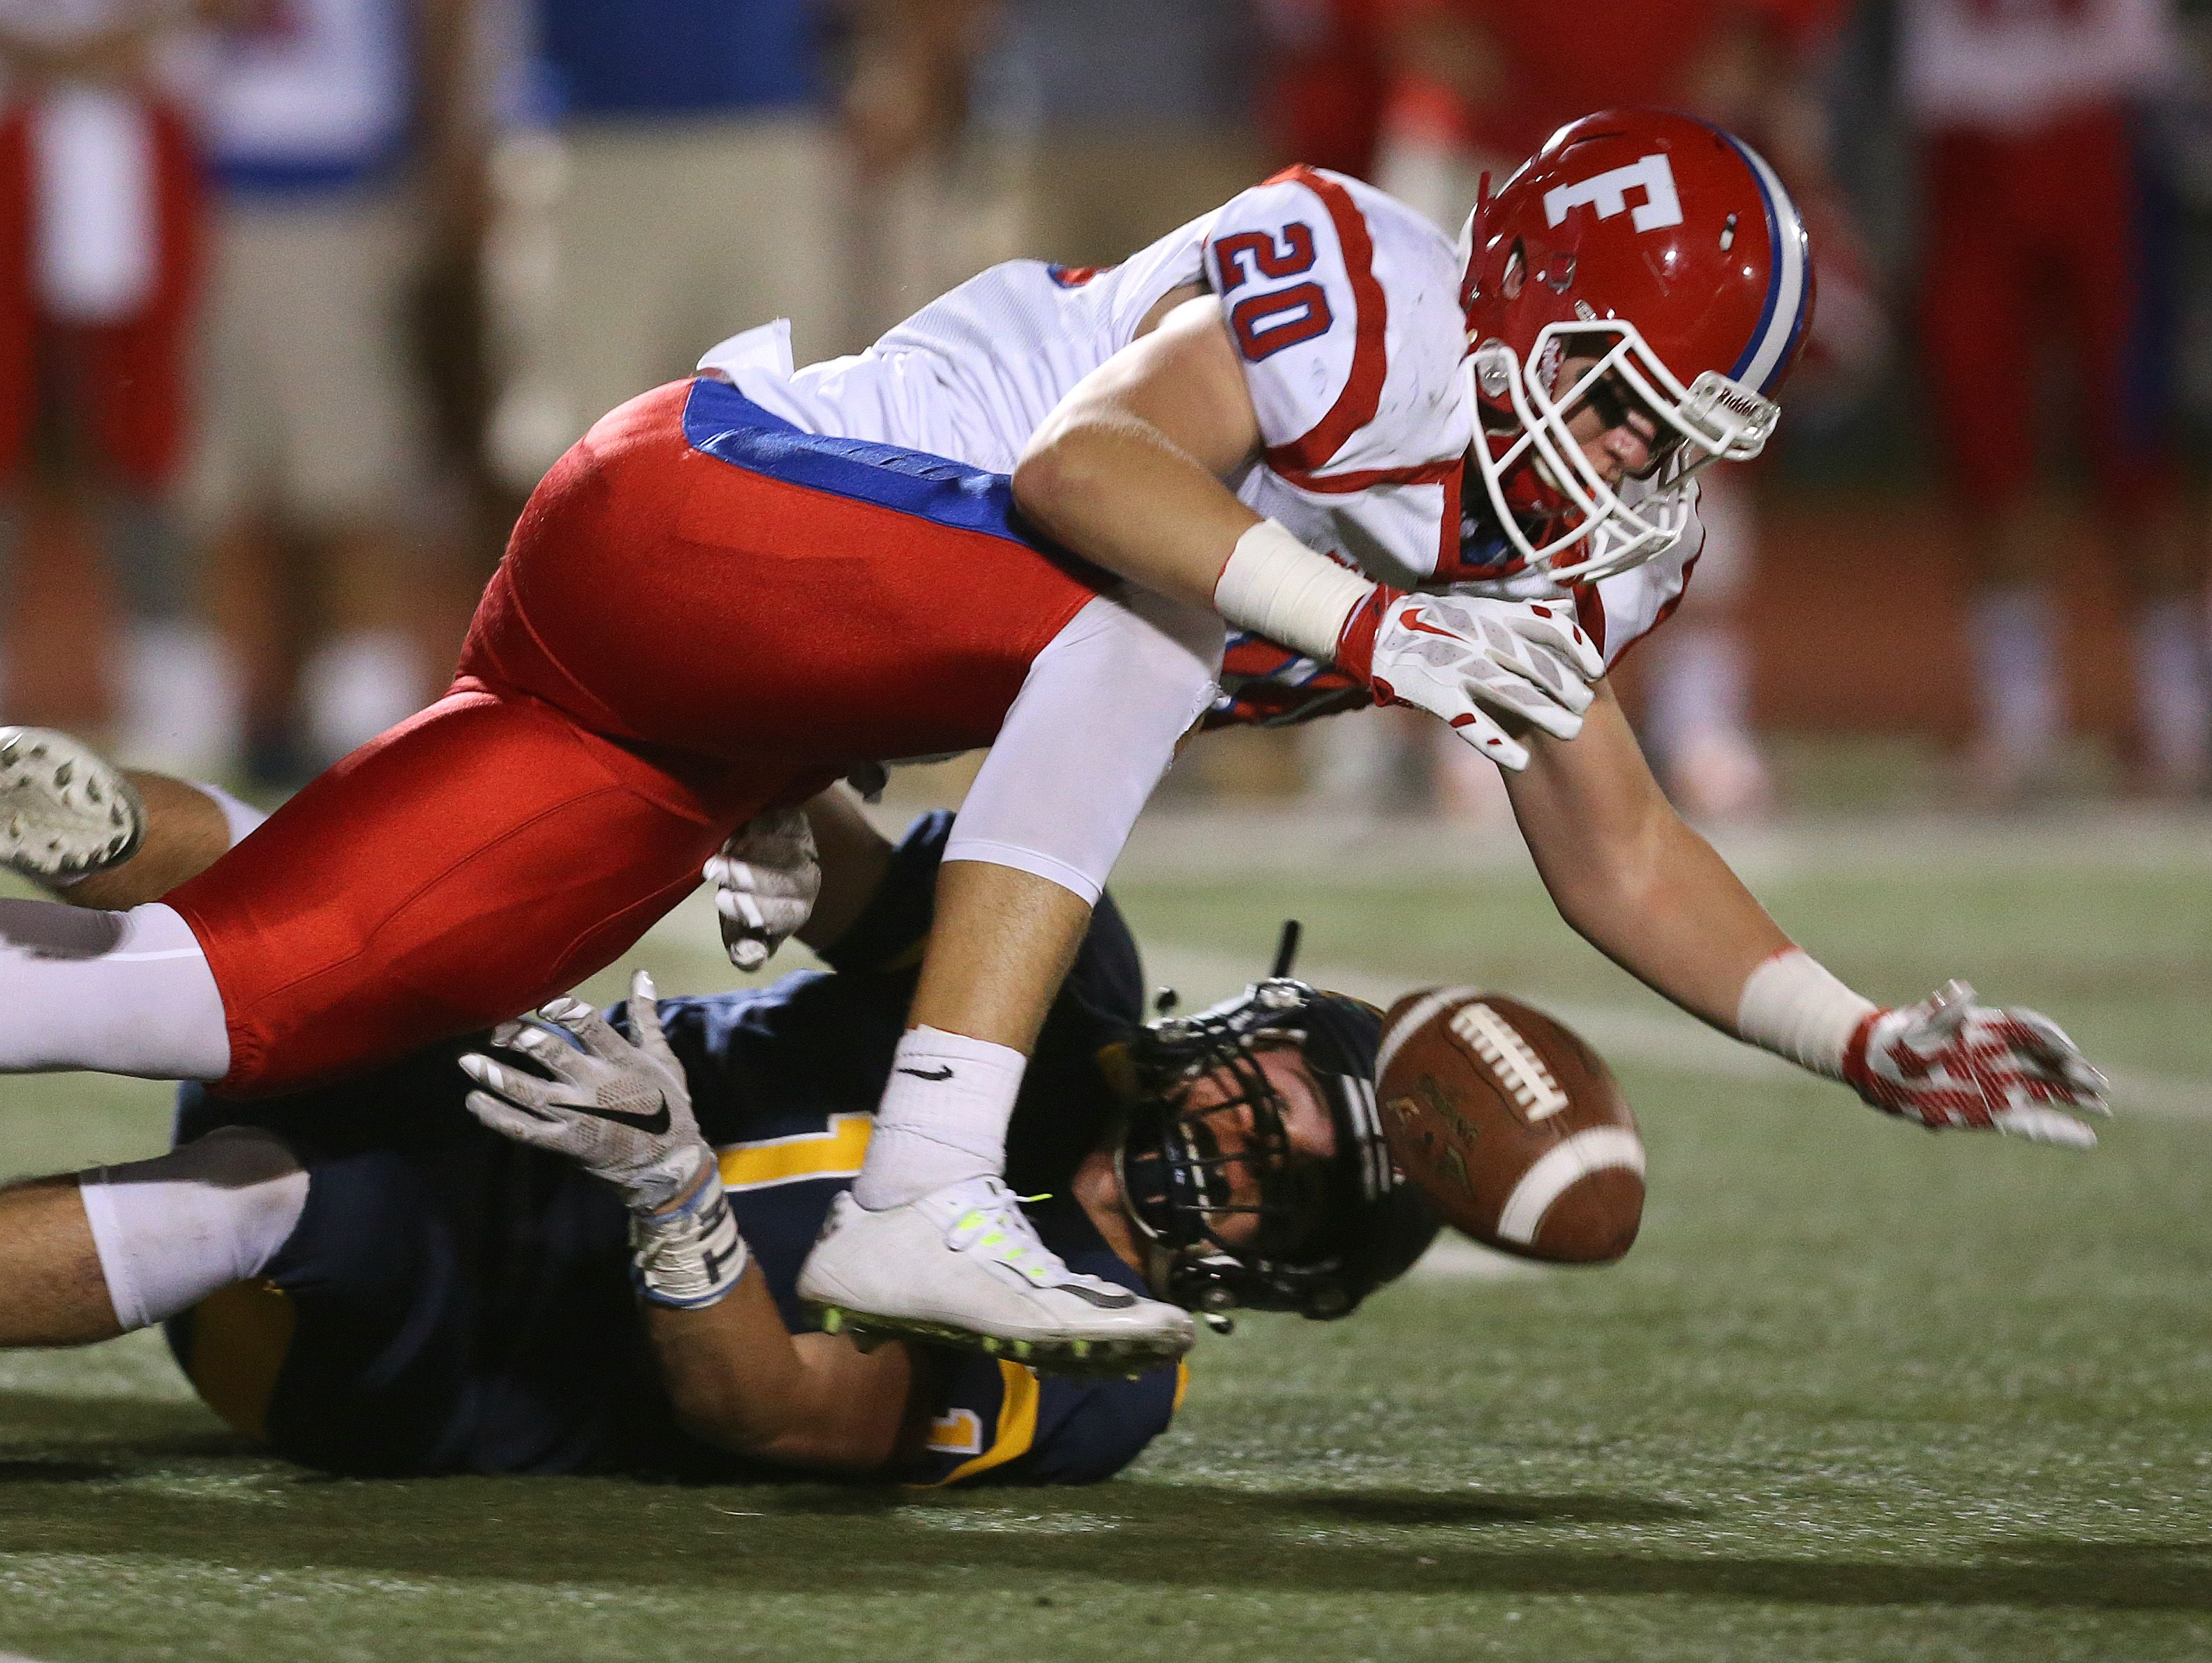 Fairport running back Michael Kozar (20) is tackled by Victor's Mitchell Cain (1). Kozar was ruled down by contact before the fumble.